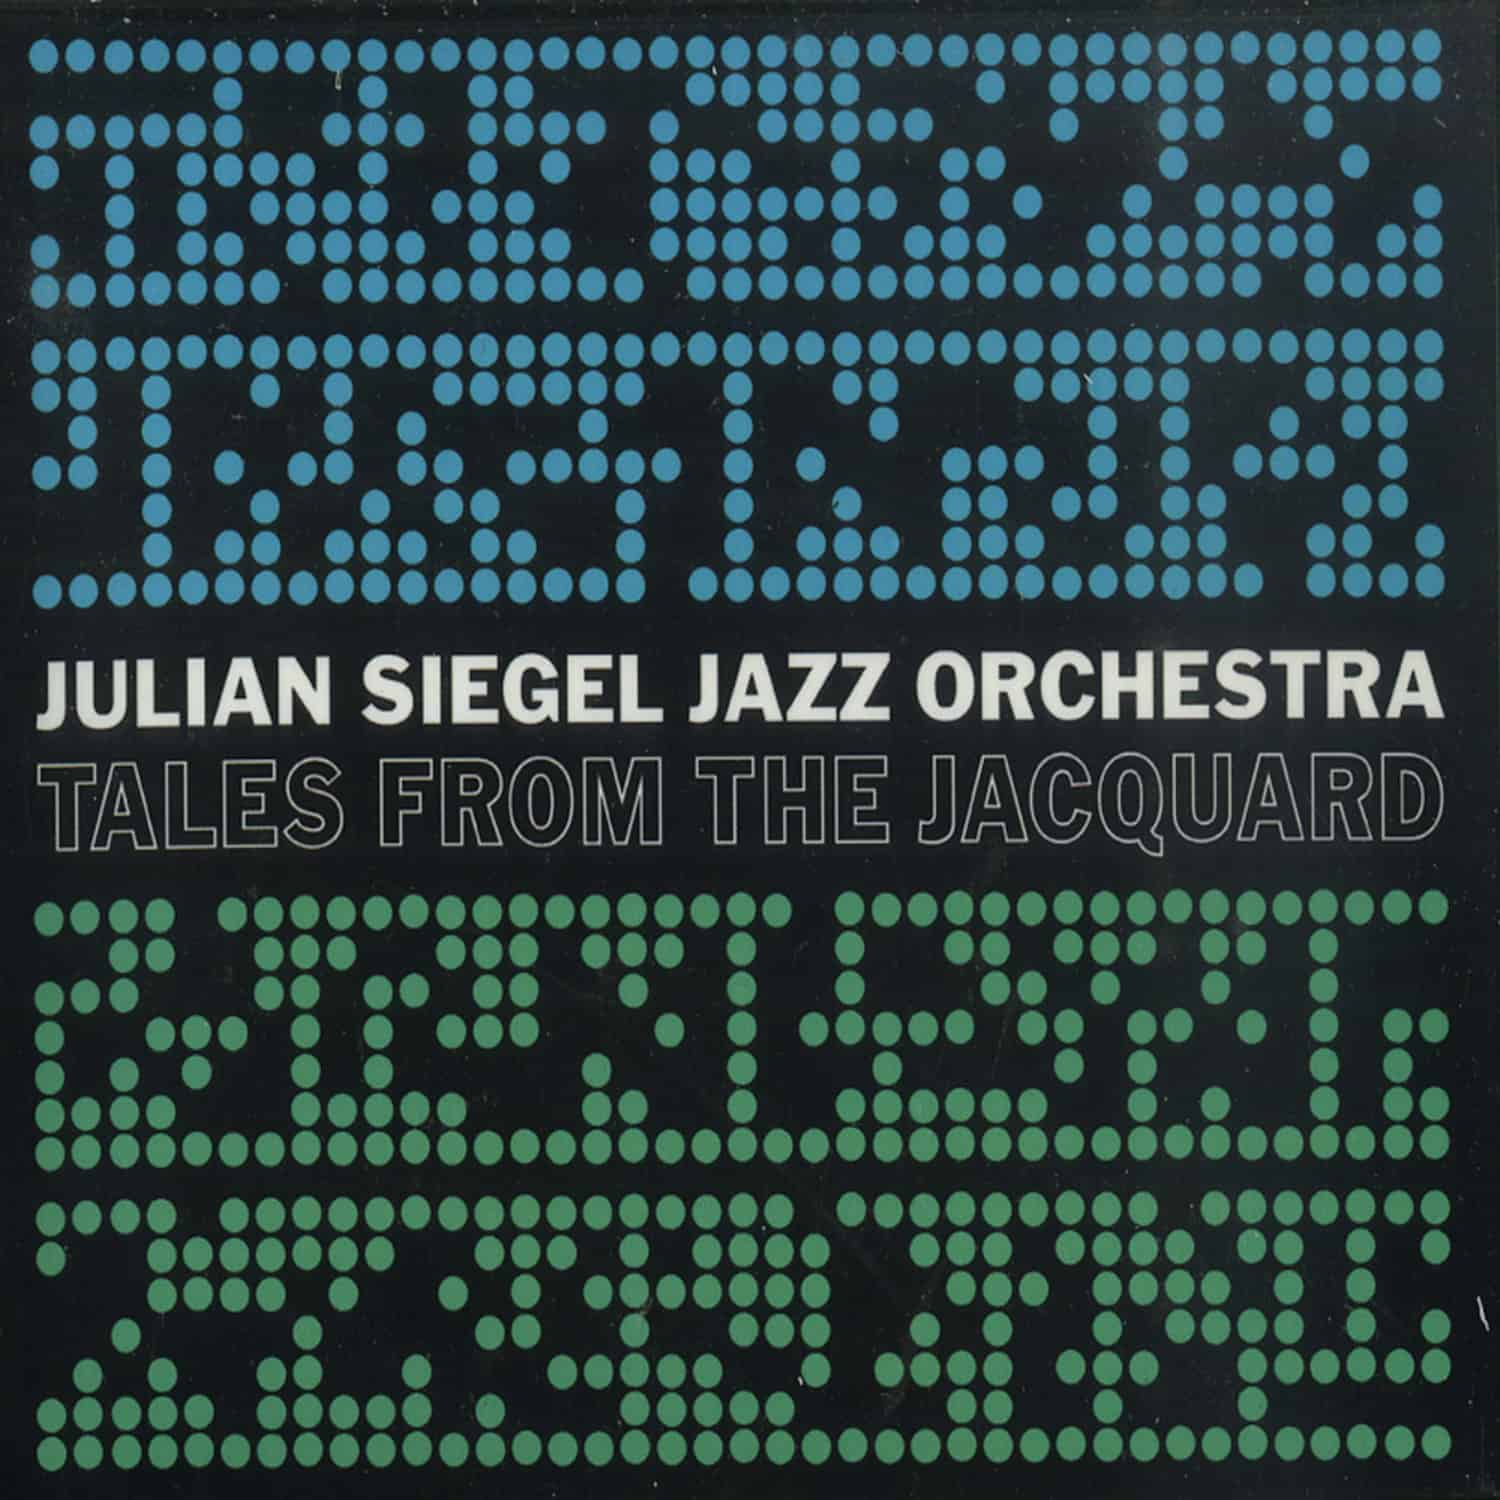 Julian Siegel Jazz Orchestra - TALES FROM THE JAQUARD